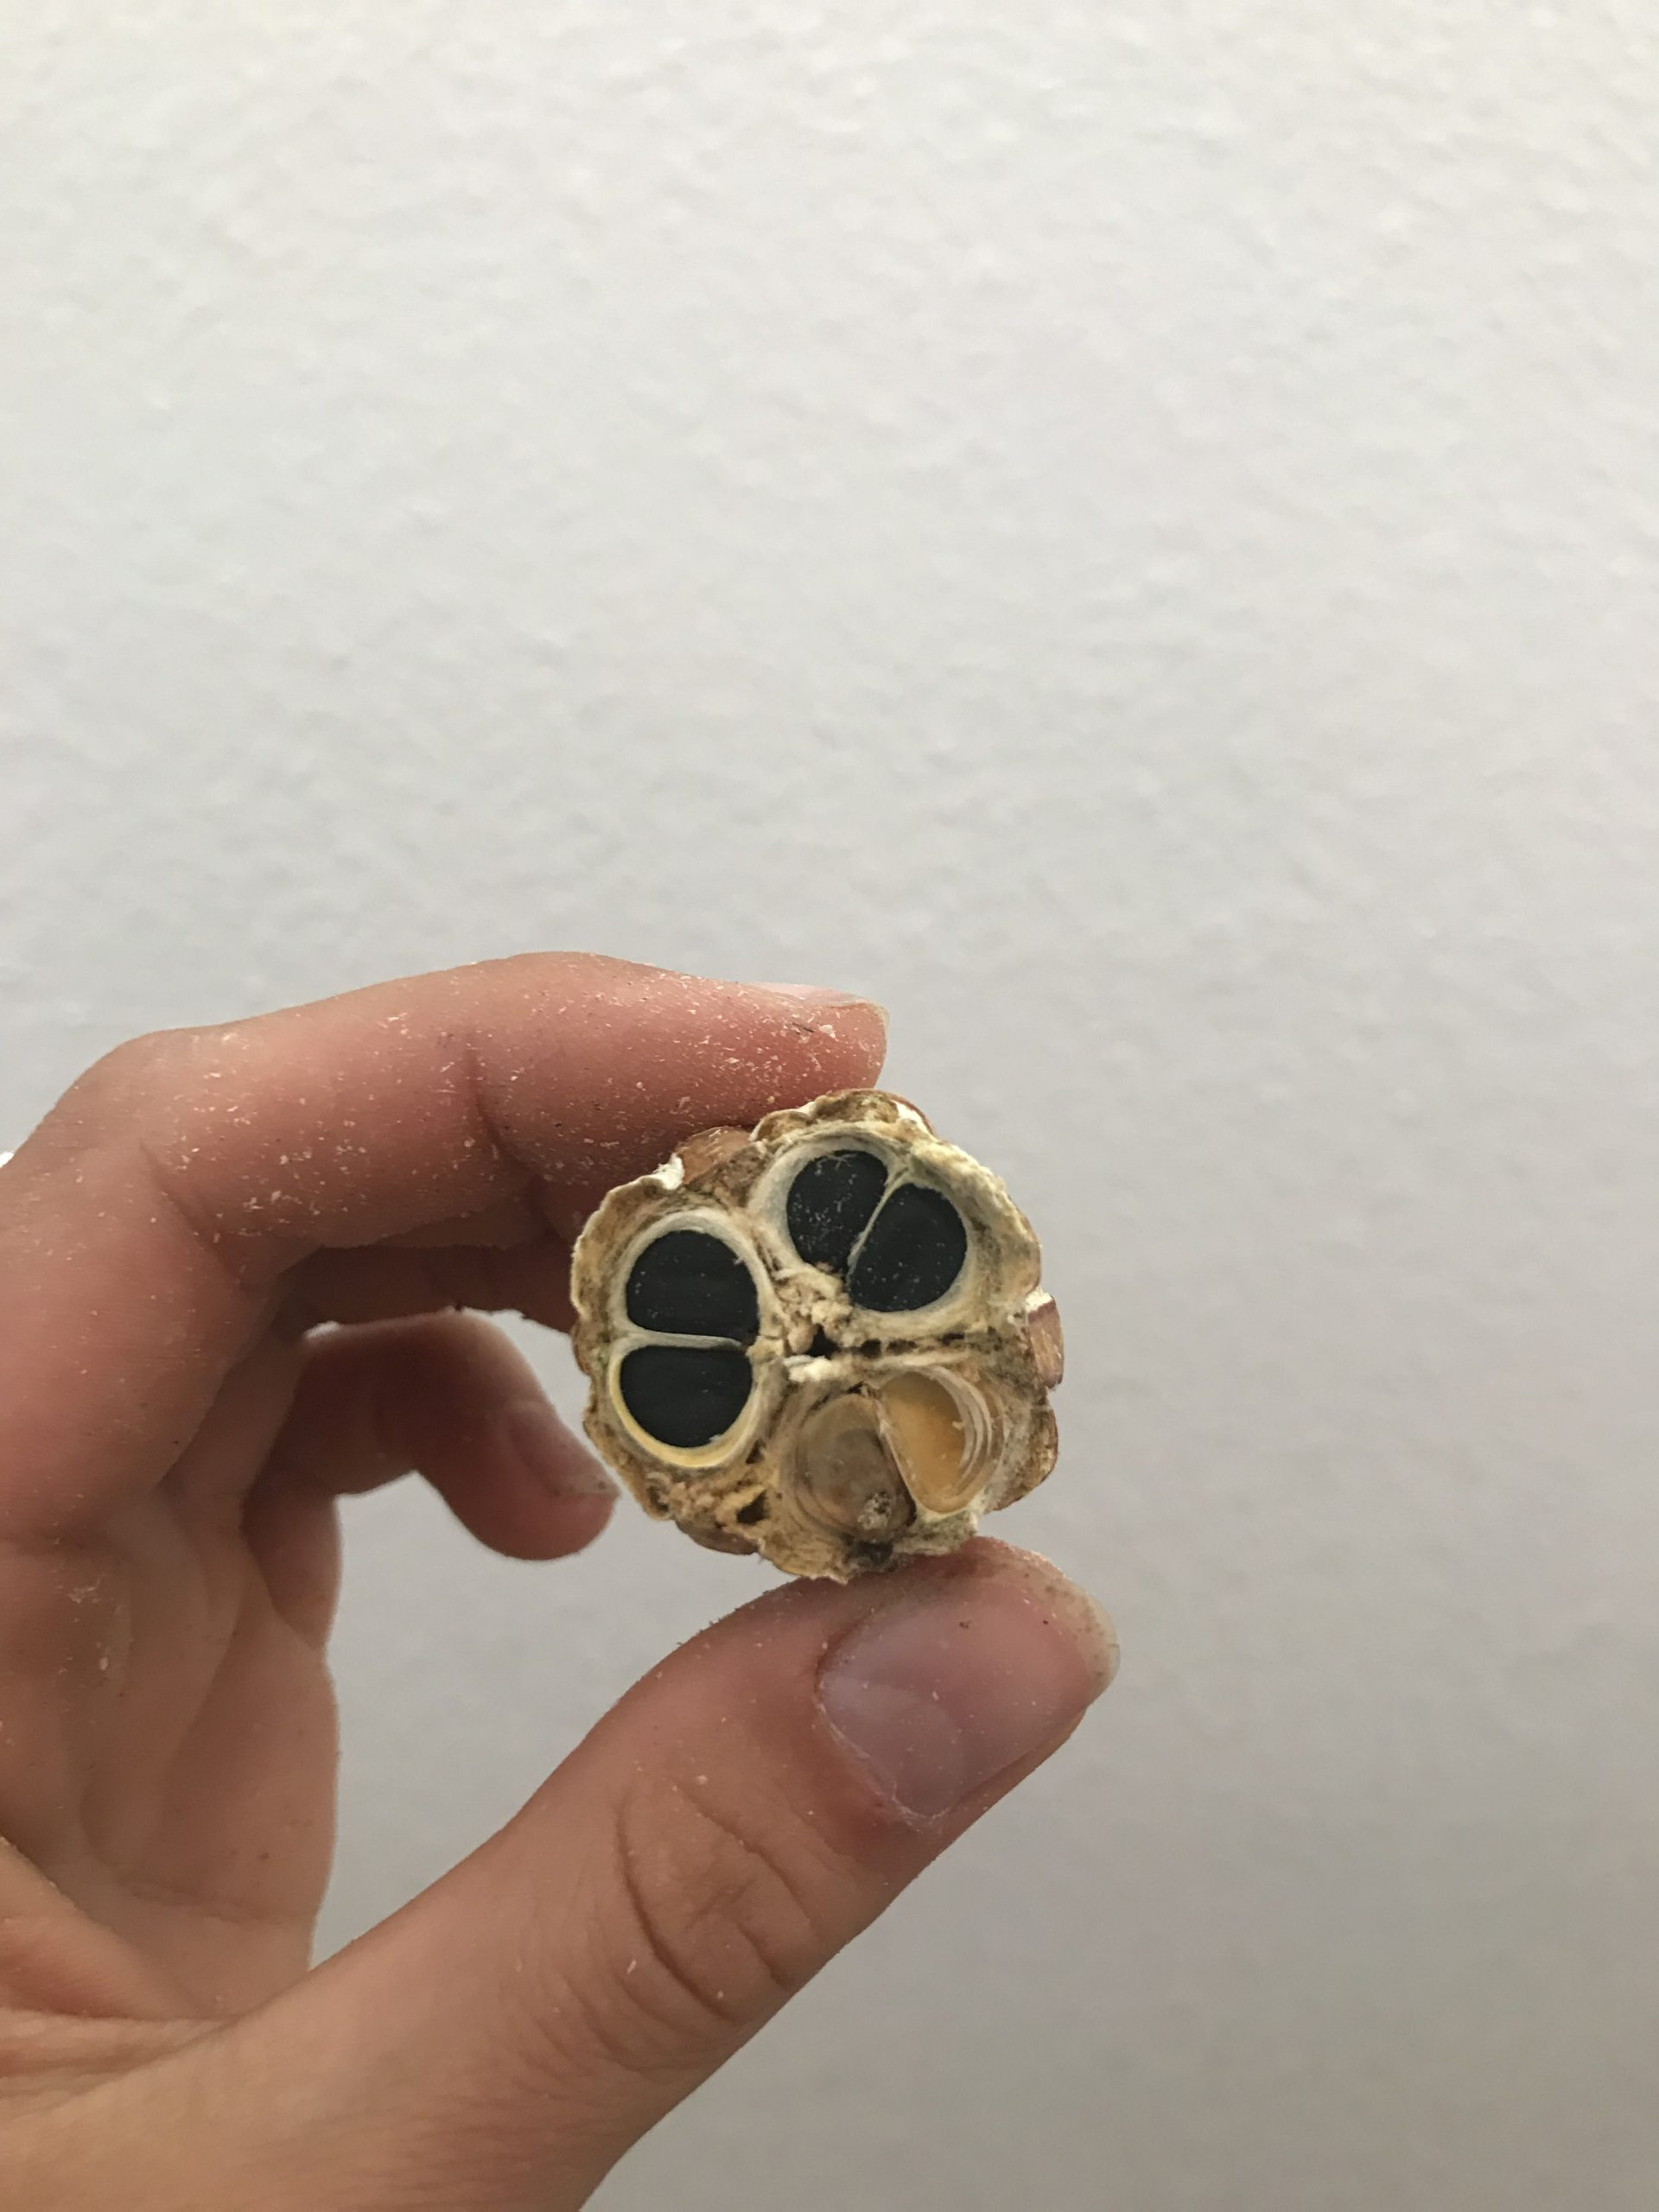 A Joshua tree fruit cut in cross section to reveal the black and white seeds inside